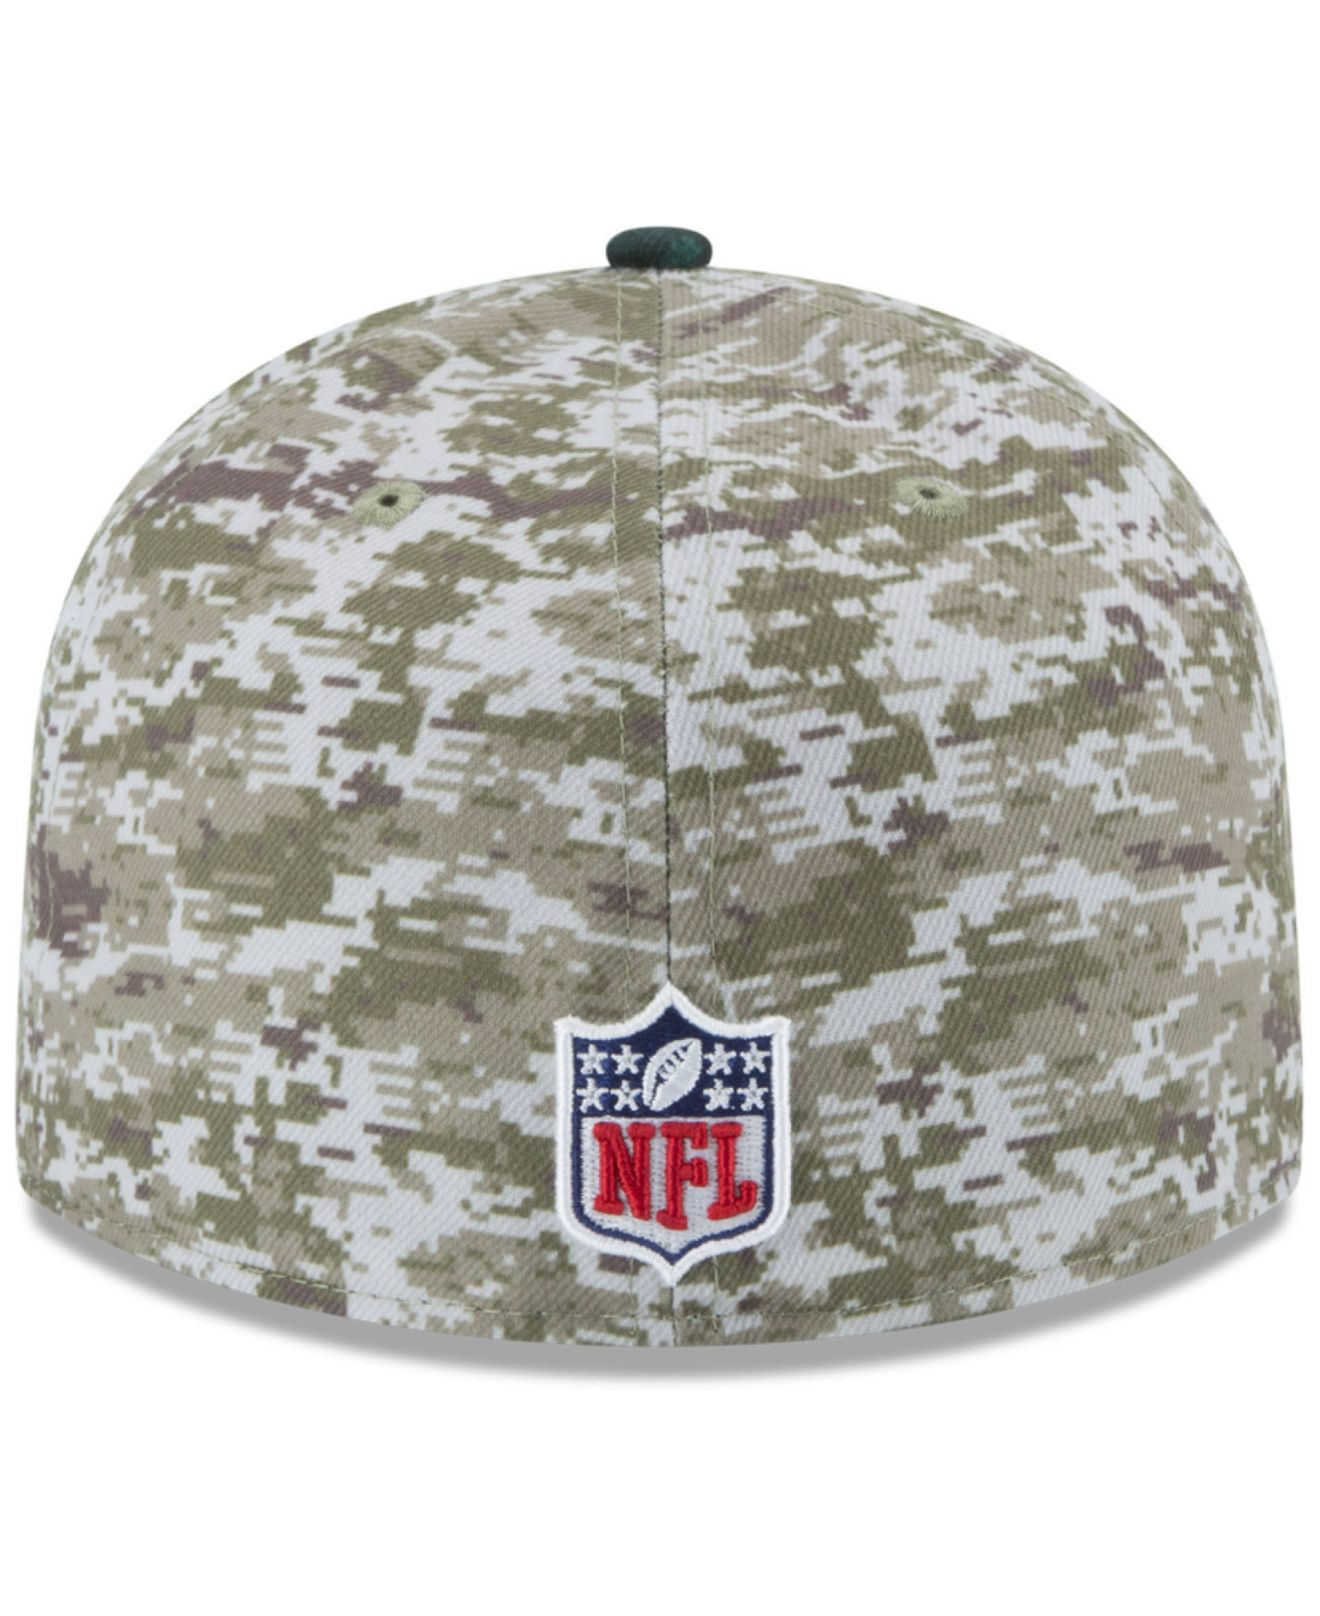 85acd316cfe Lyst - Ktz Philadelphia Eagles Salute To Service 59fifty Cap in ...